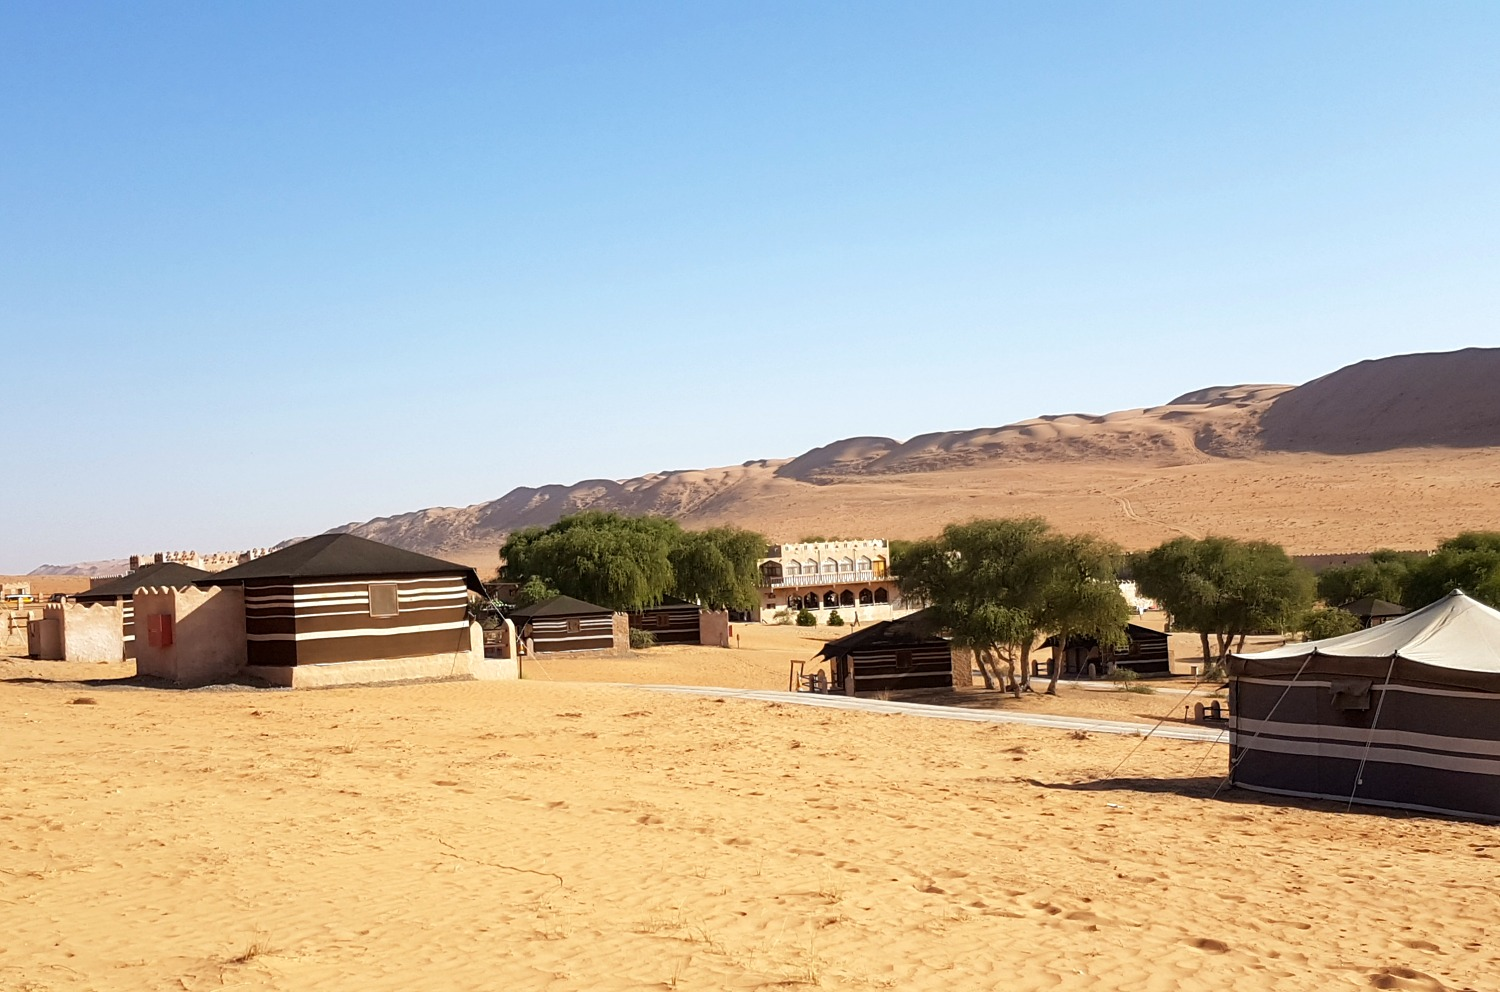 A view of tents at the 1000 Nights Camp in Oman against a blue sky - our stay in Wahiba Sands